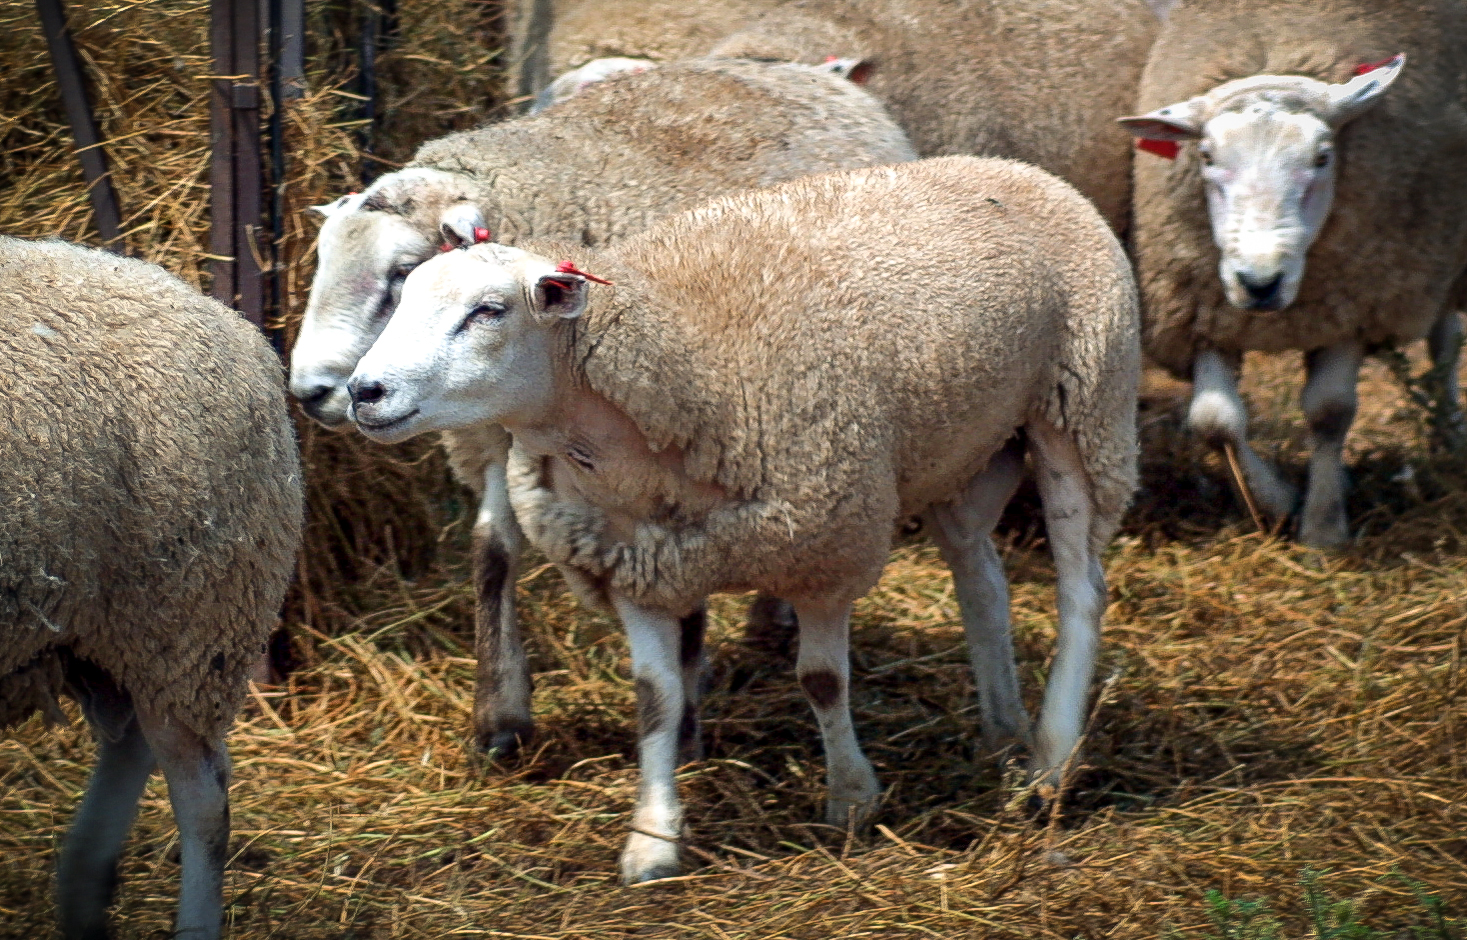 Male Texel sheep that had its genome sequenced for the project.